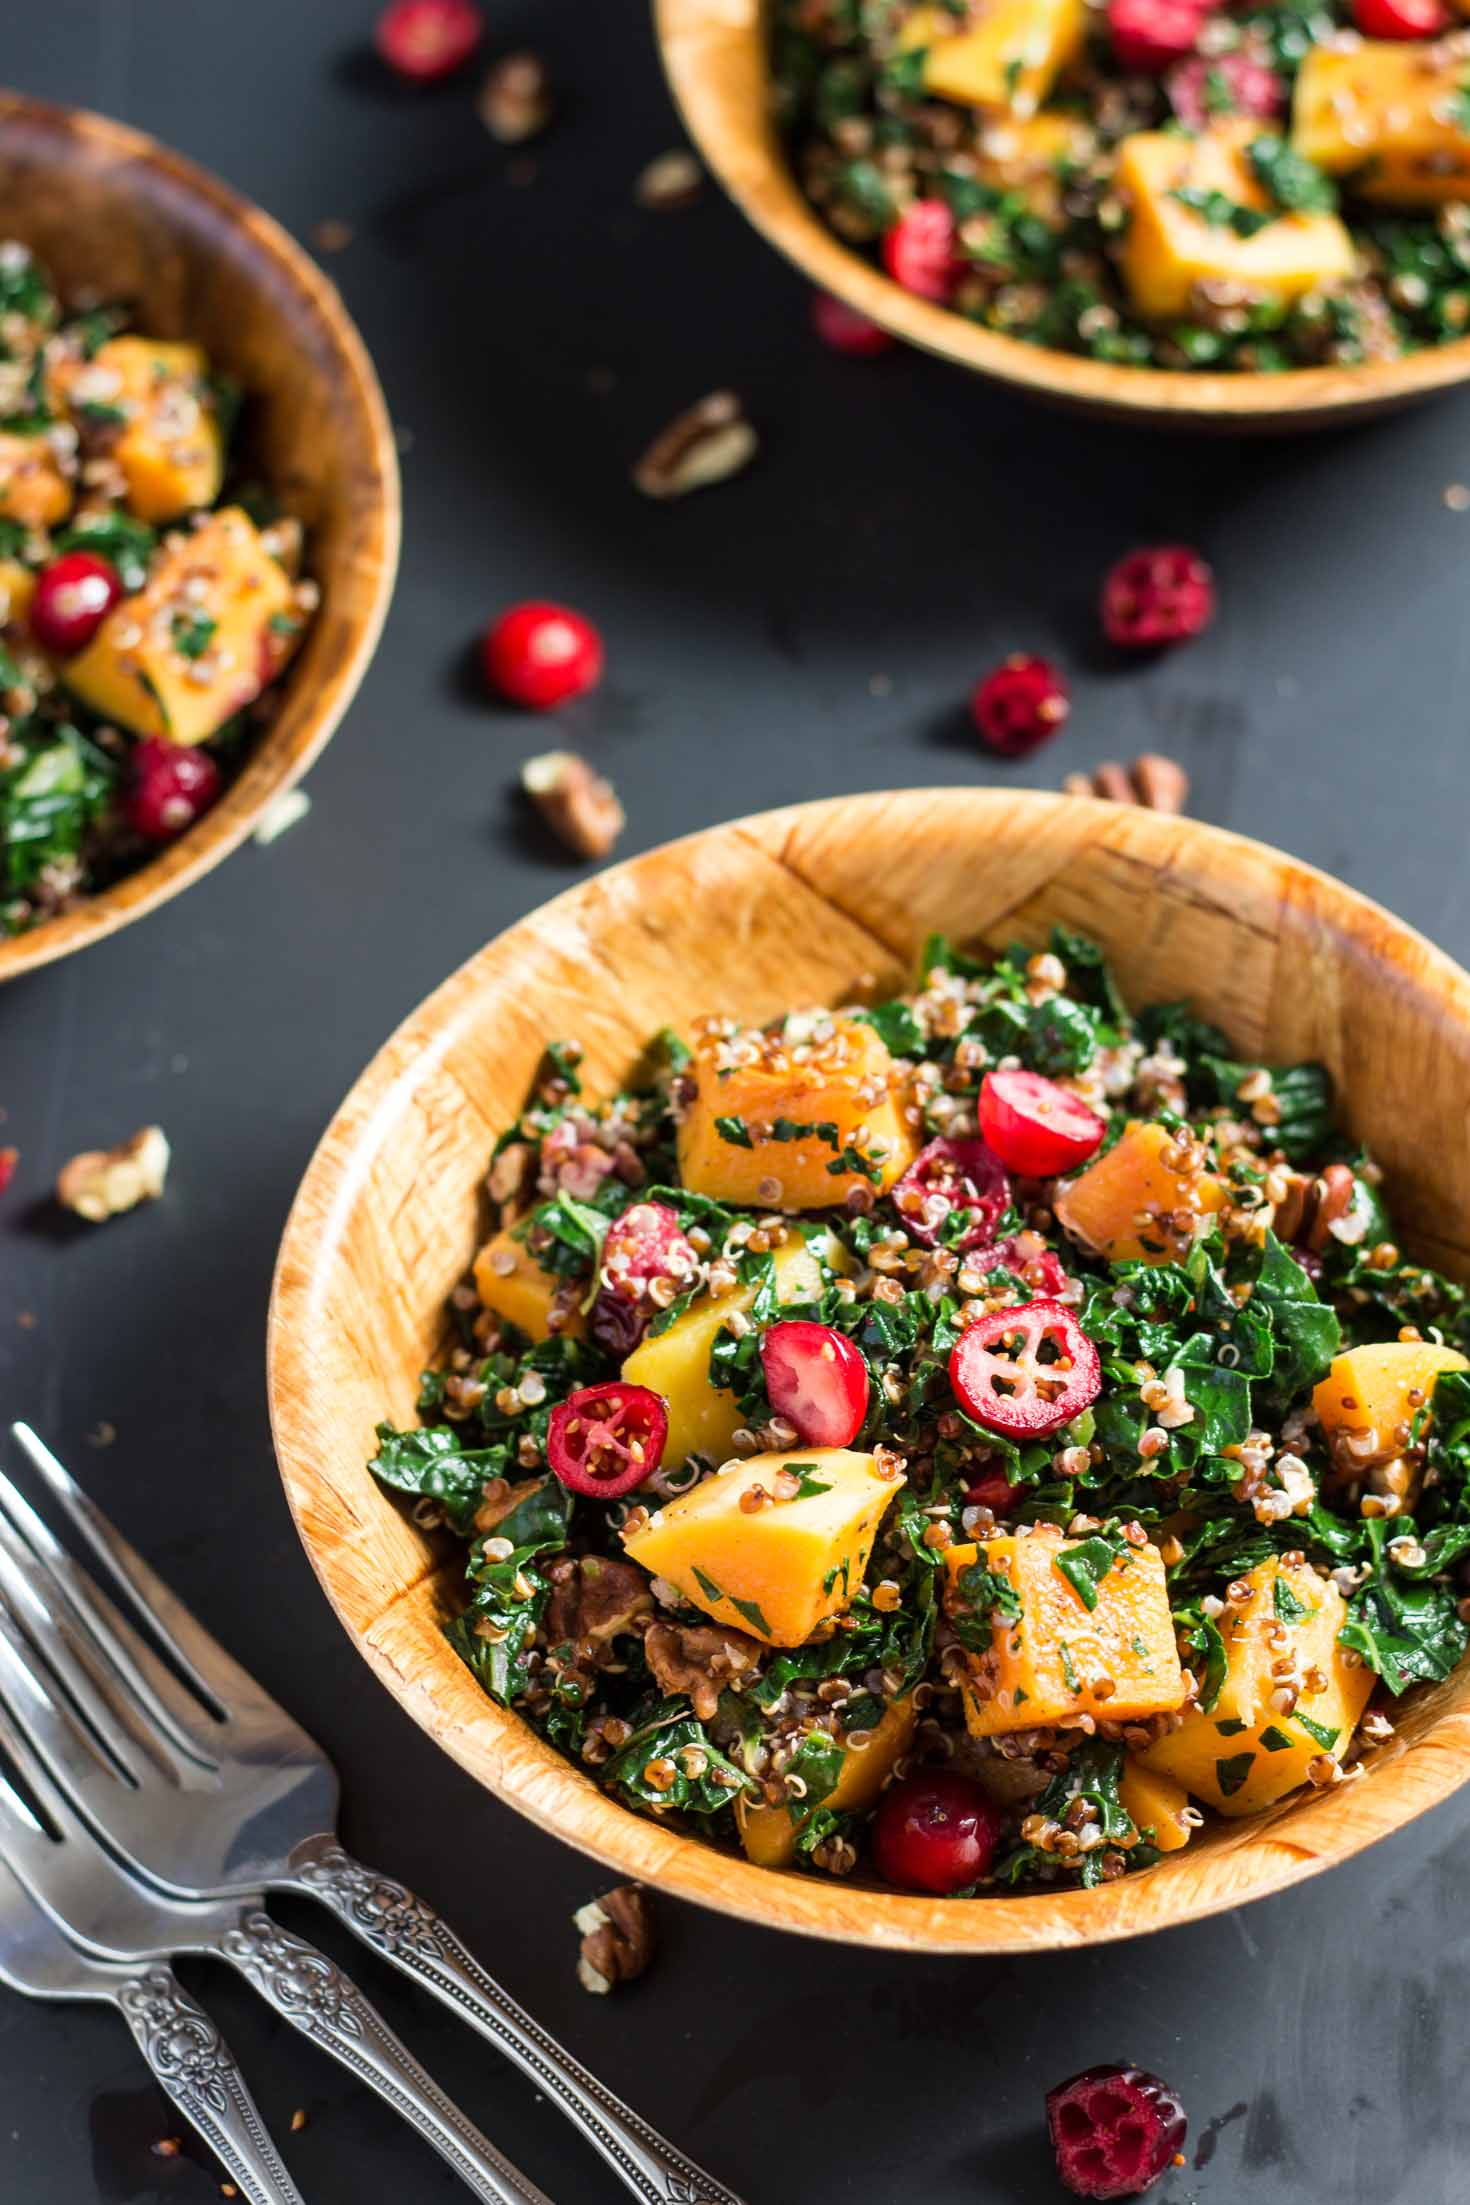 Cranberry, Kale and Roasted Butternut Squash Red Quinoa-top view with three salad bowls